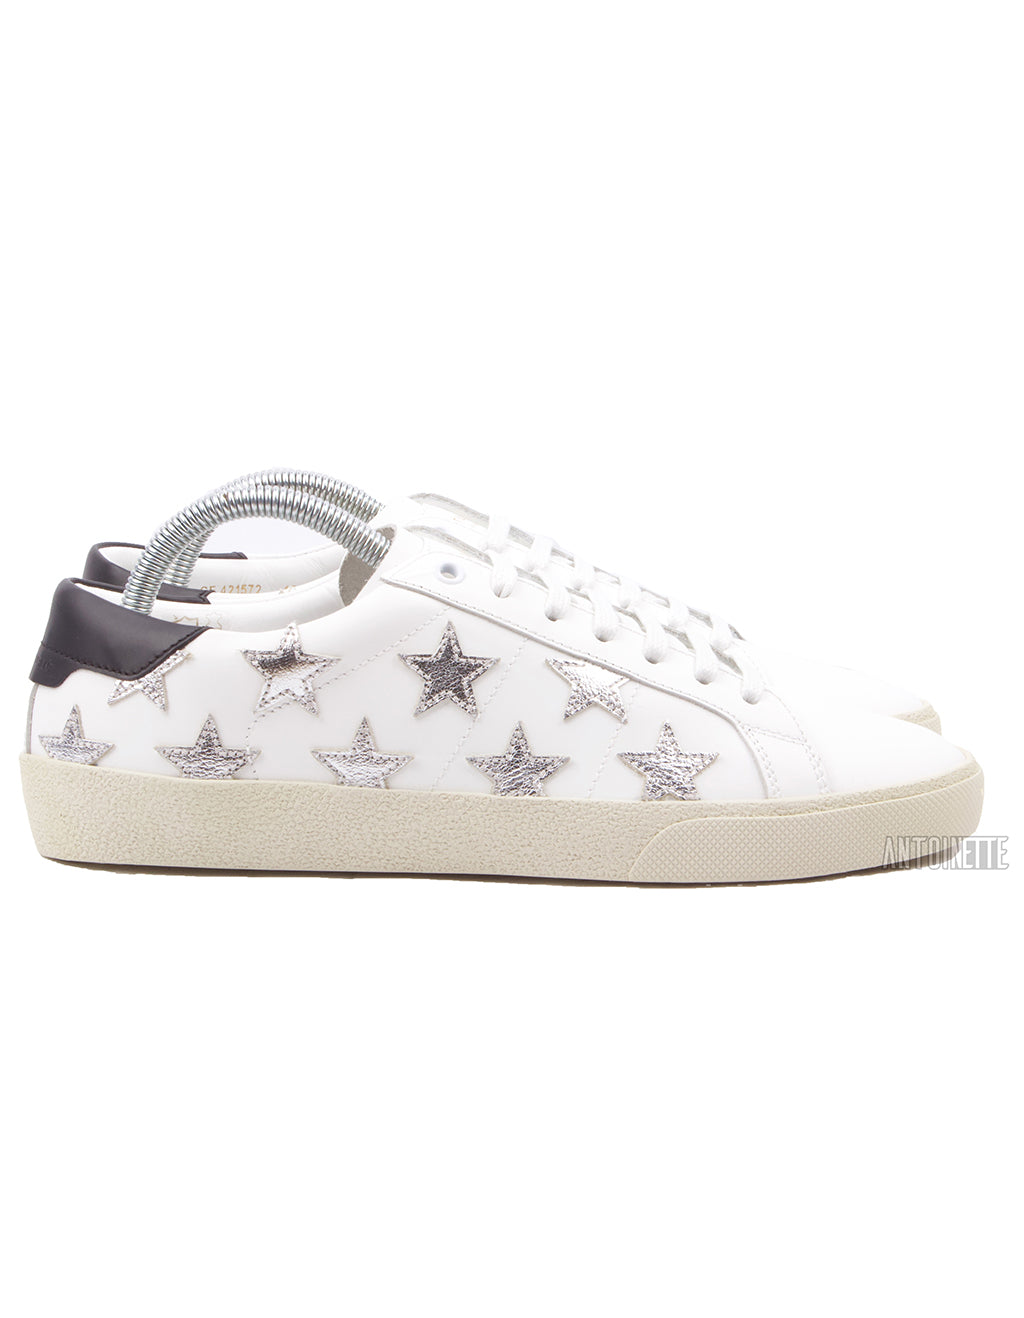 91c28b237d07 Saint Laurent White Court Classic SL 06 Metallic Star Leather Sneakers